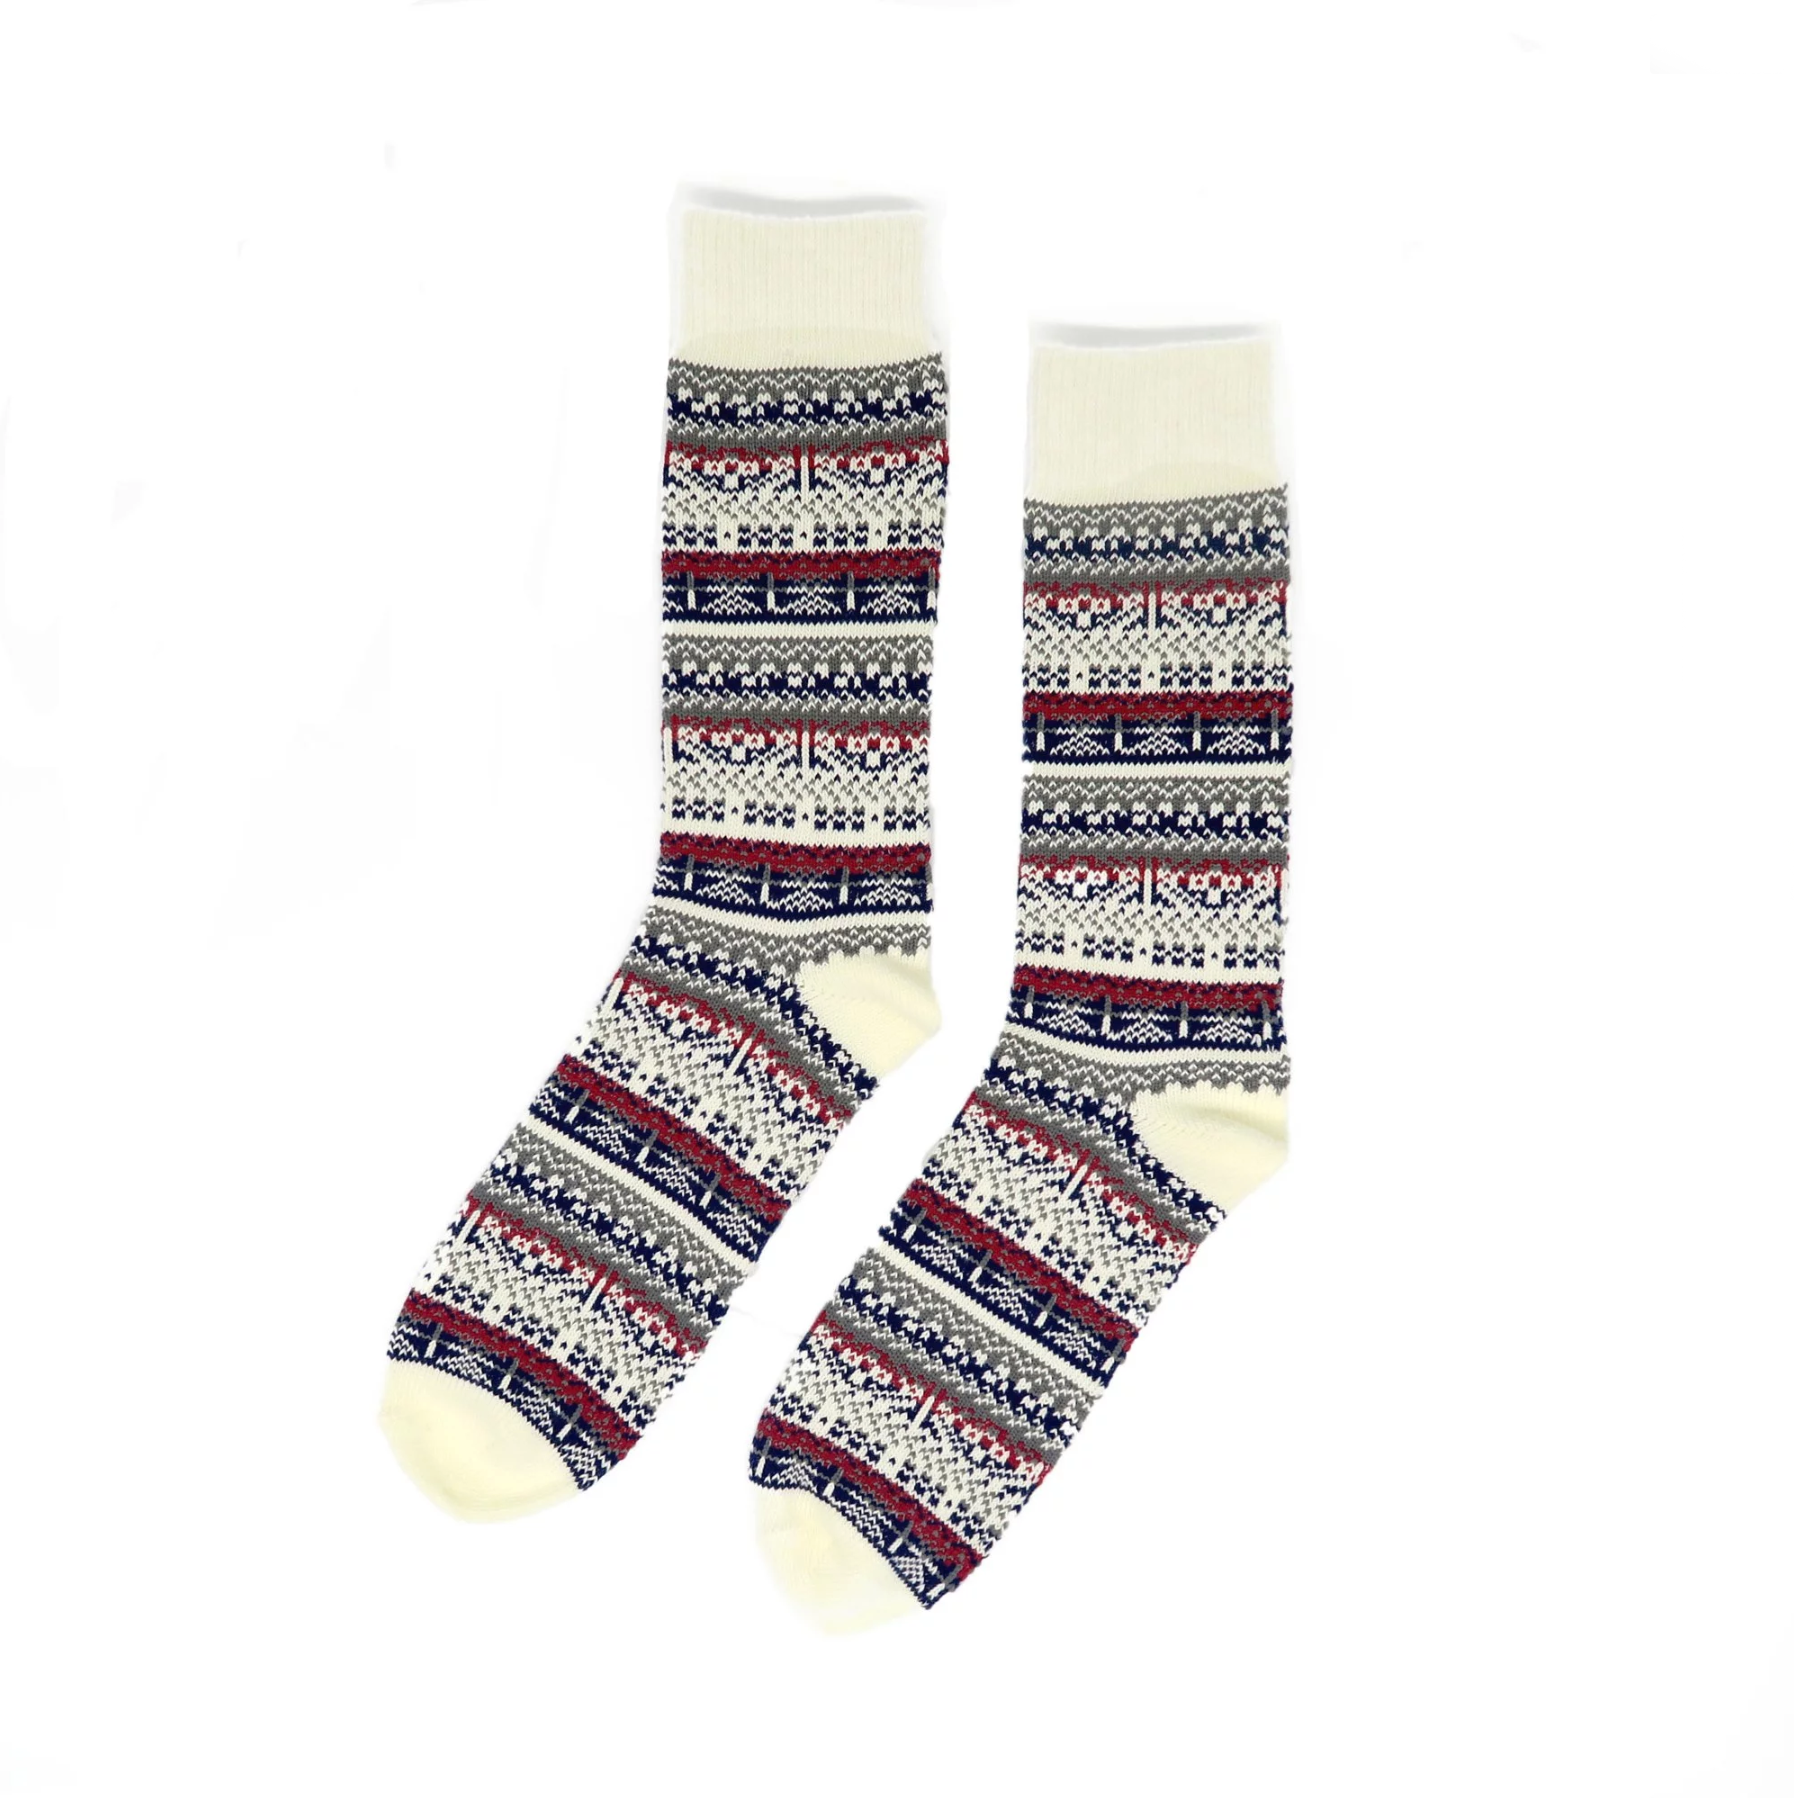 Helsinki Socks - Limited Edition